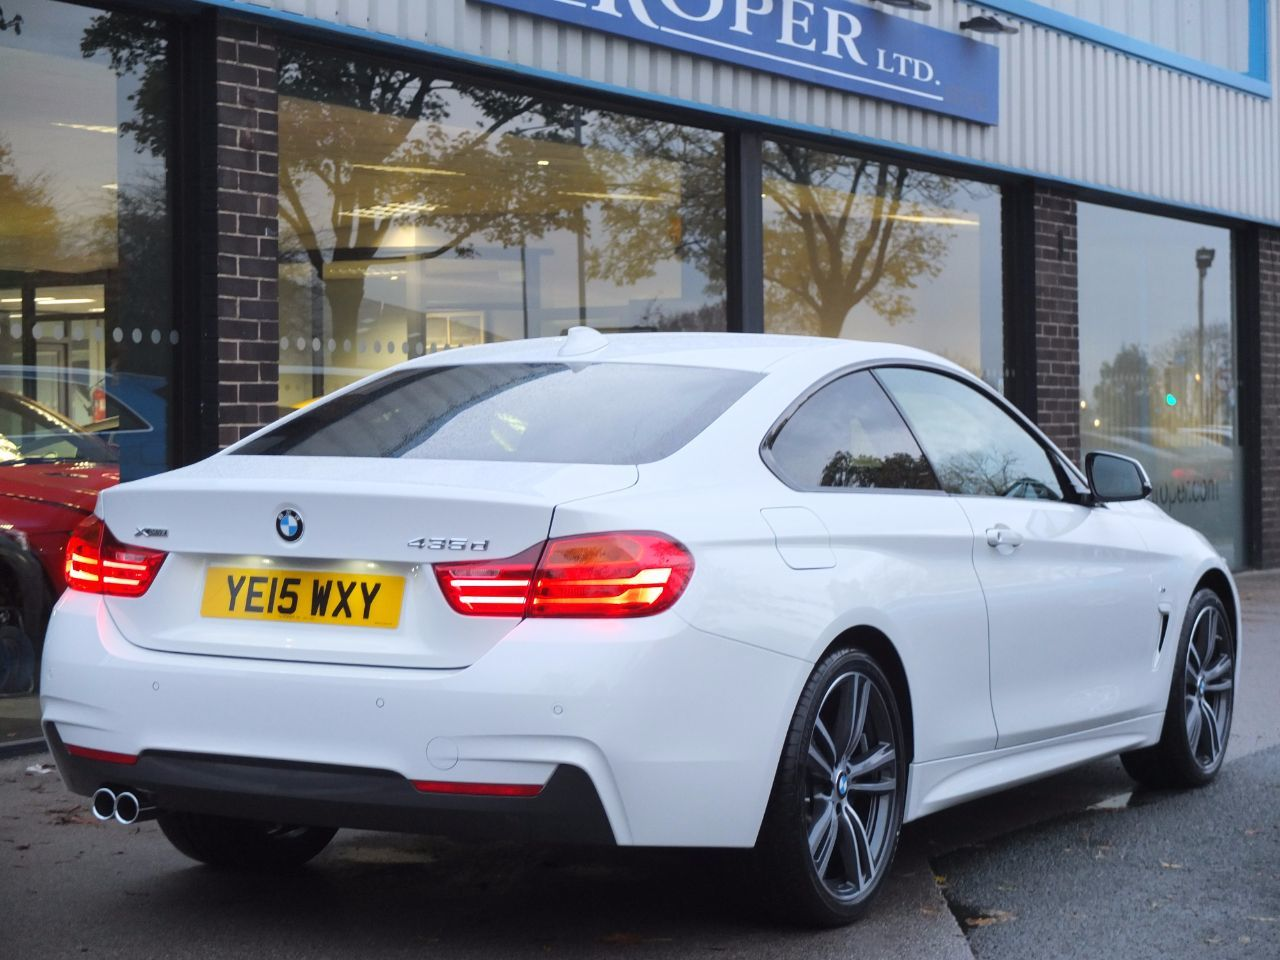 BMW 4 Series 3.0 435d xDrive M Sport Auto (M Sport Plus Pack) Coupe Diesel Alpine White